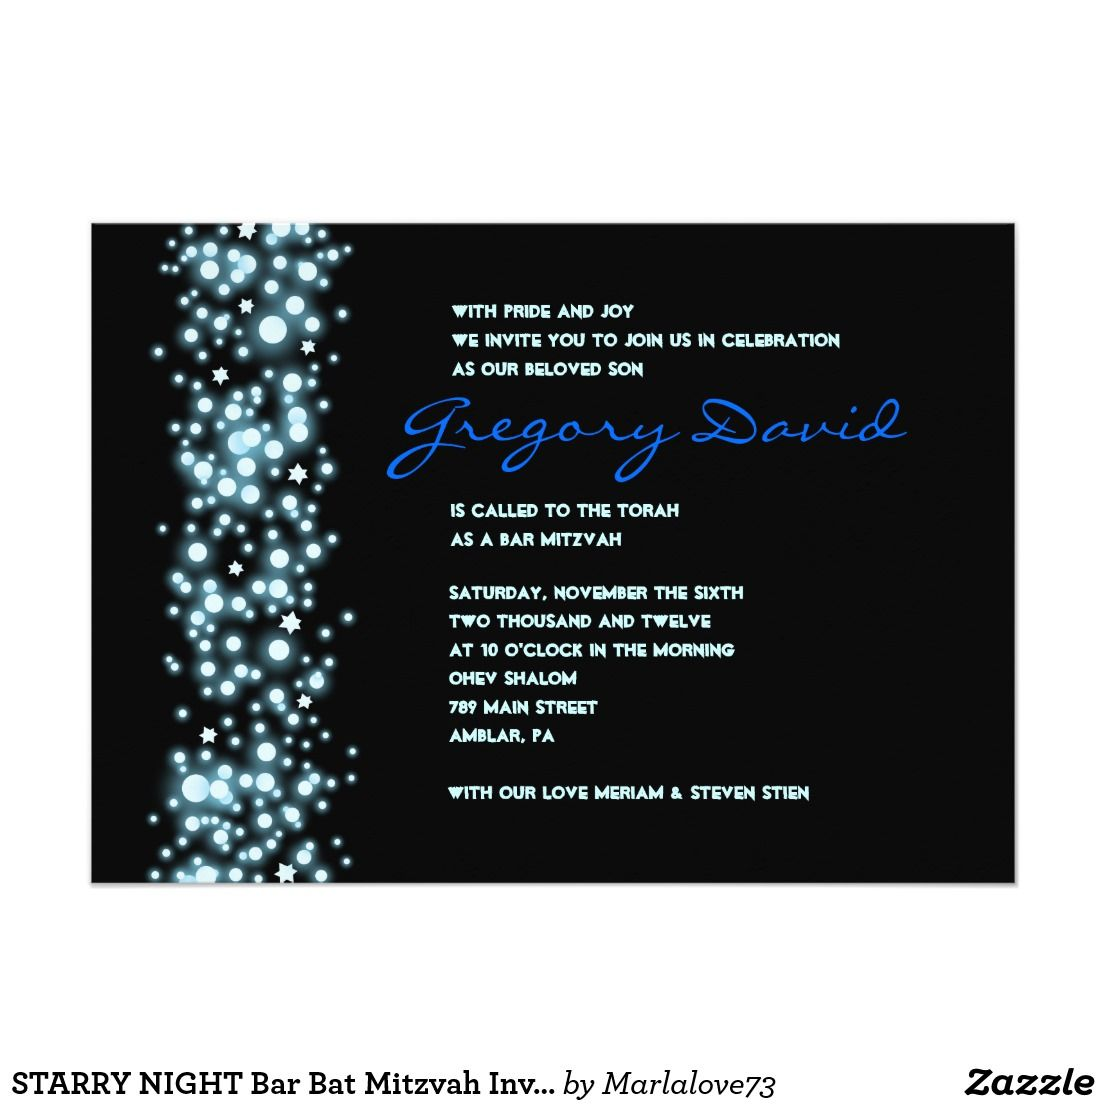 Bar Mitzvah Invitations For Boys Modern Unique Traditional Sports Blue Invitation Wording Black Ideas Invite Stars